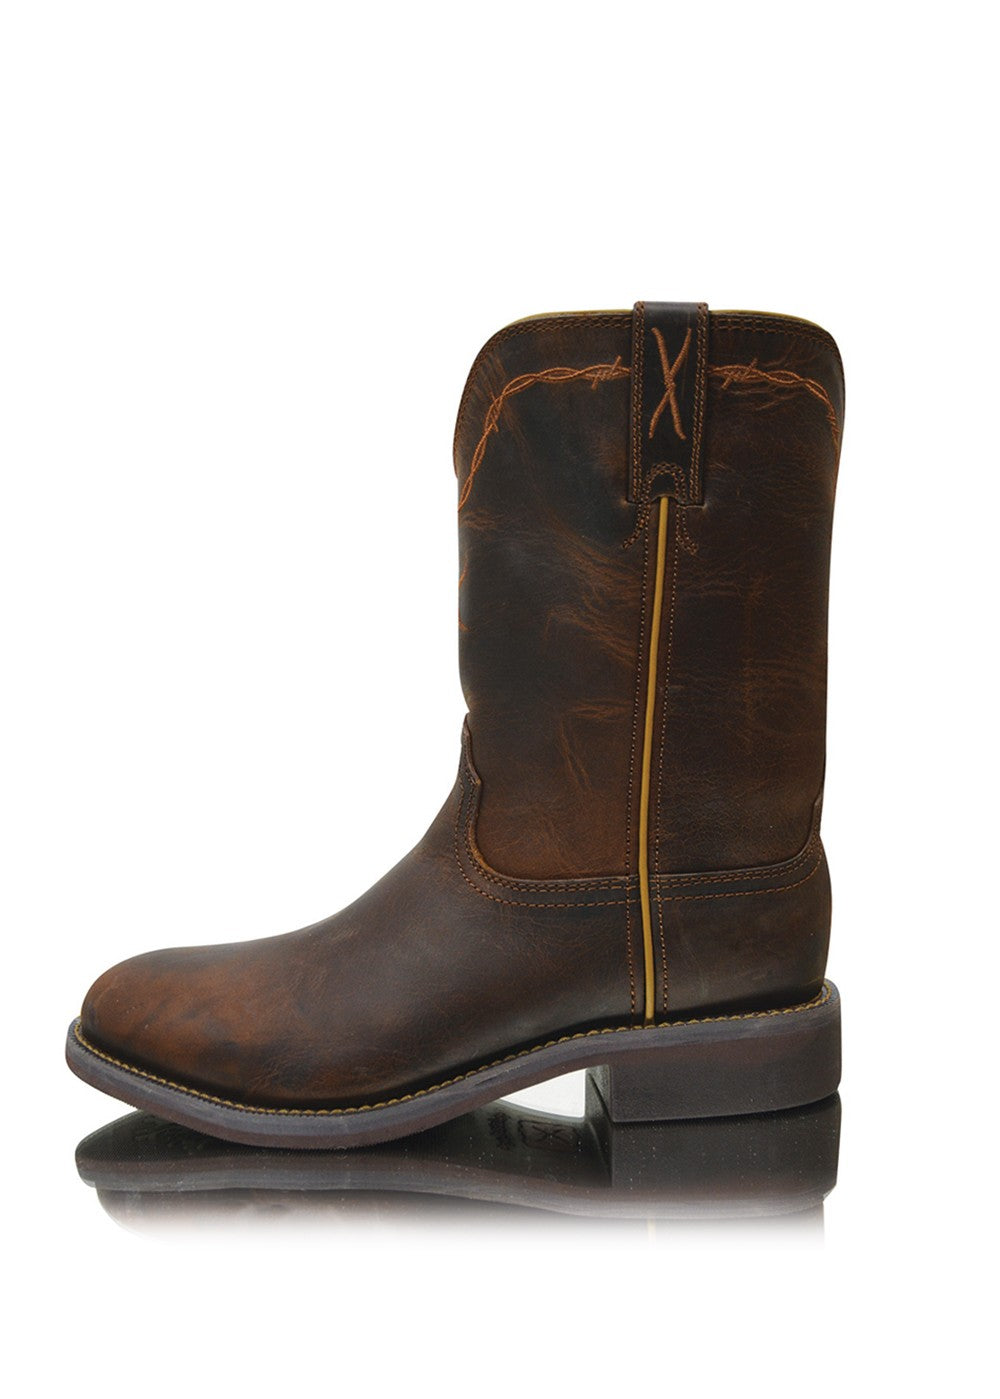 Twisted X | Women | Boots | Toe Roper | Roper Waterproof | Dark Brown - BK8 Outfitters Australia